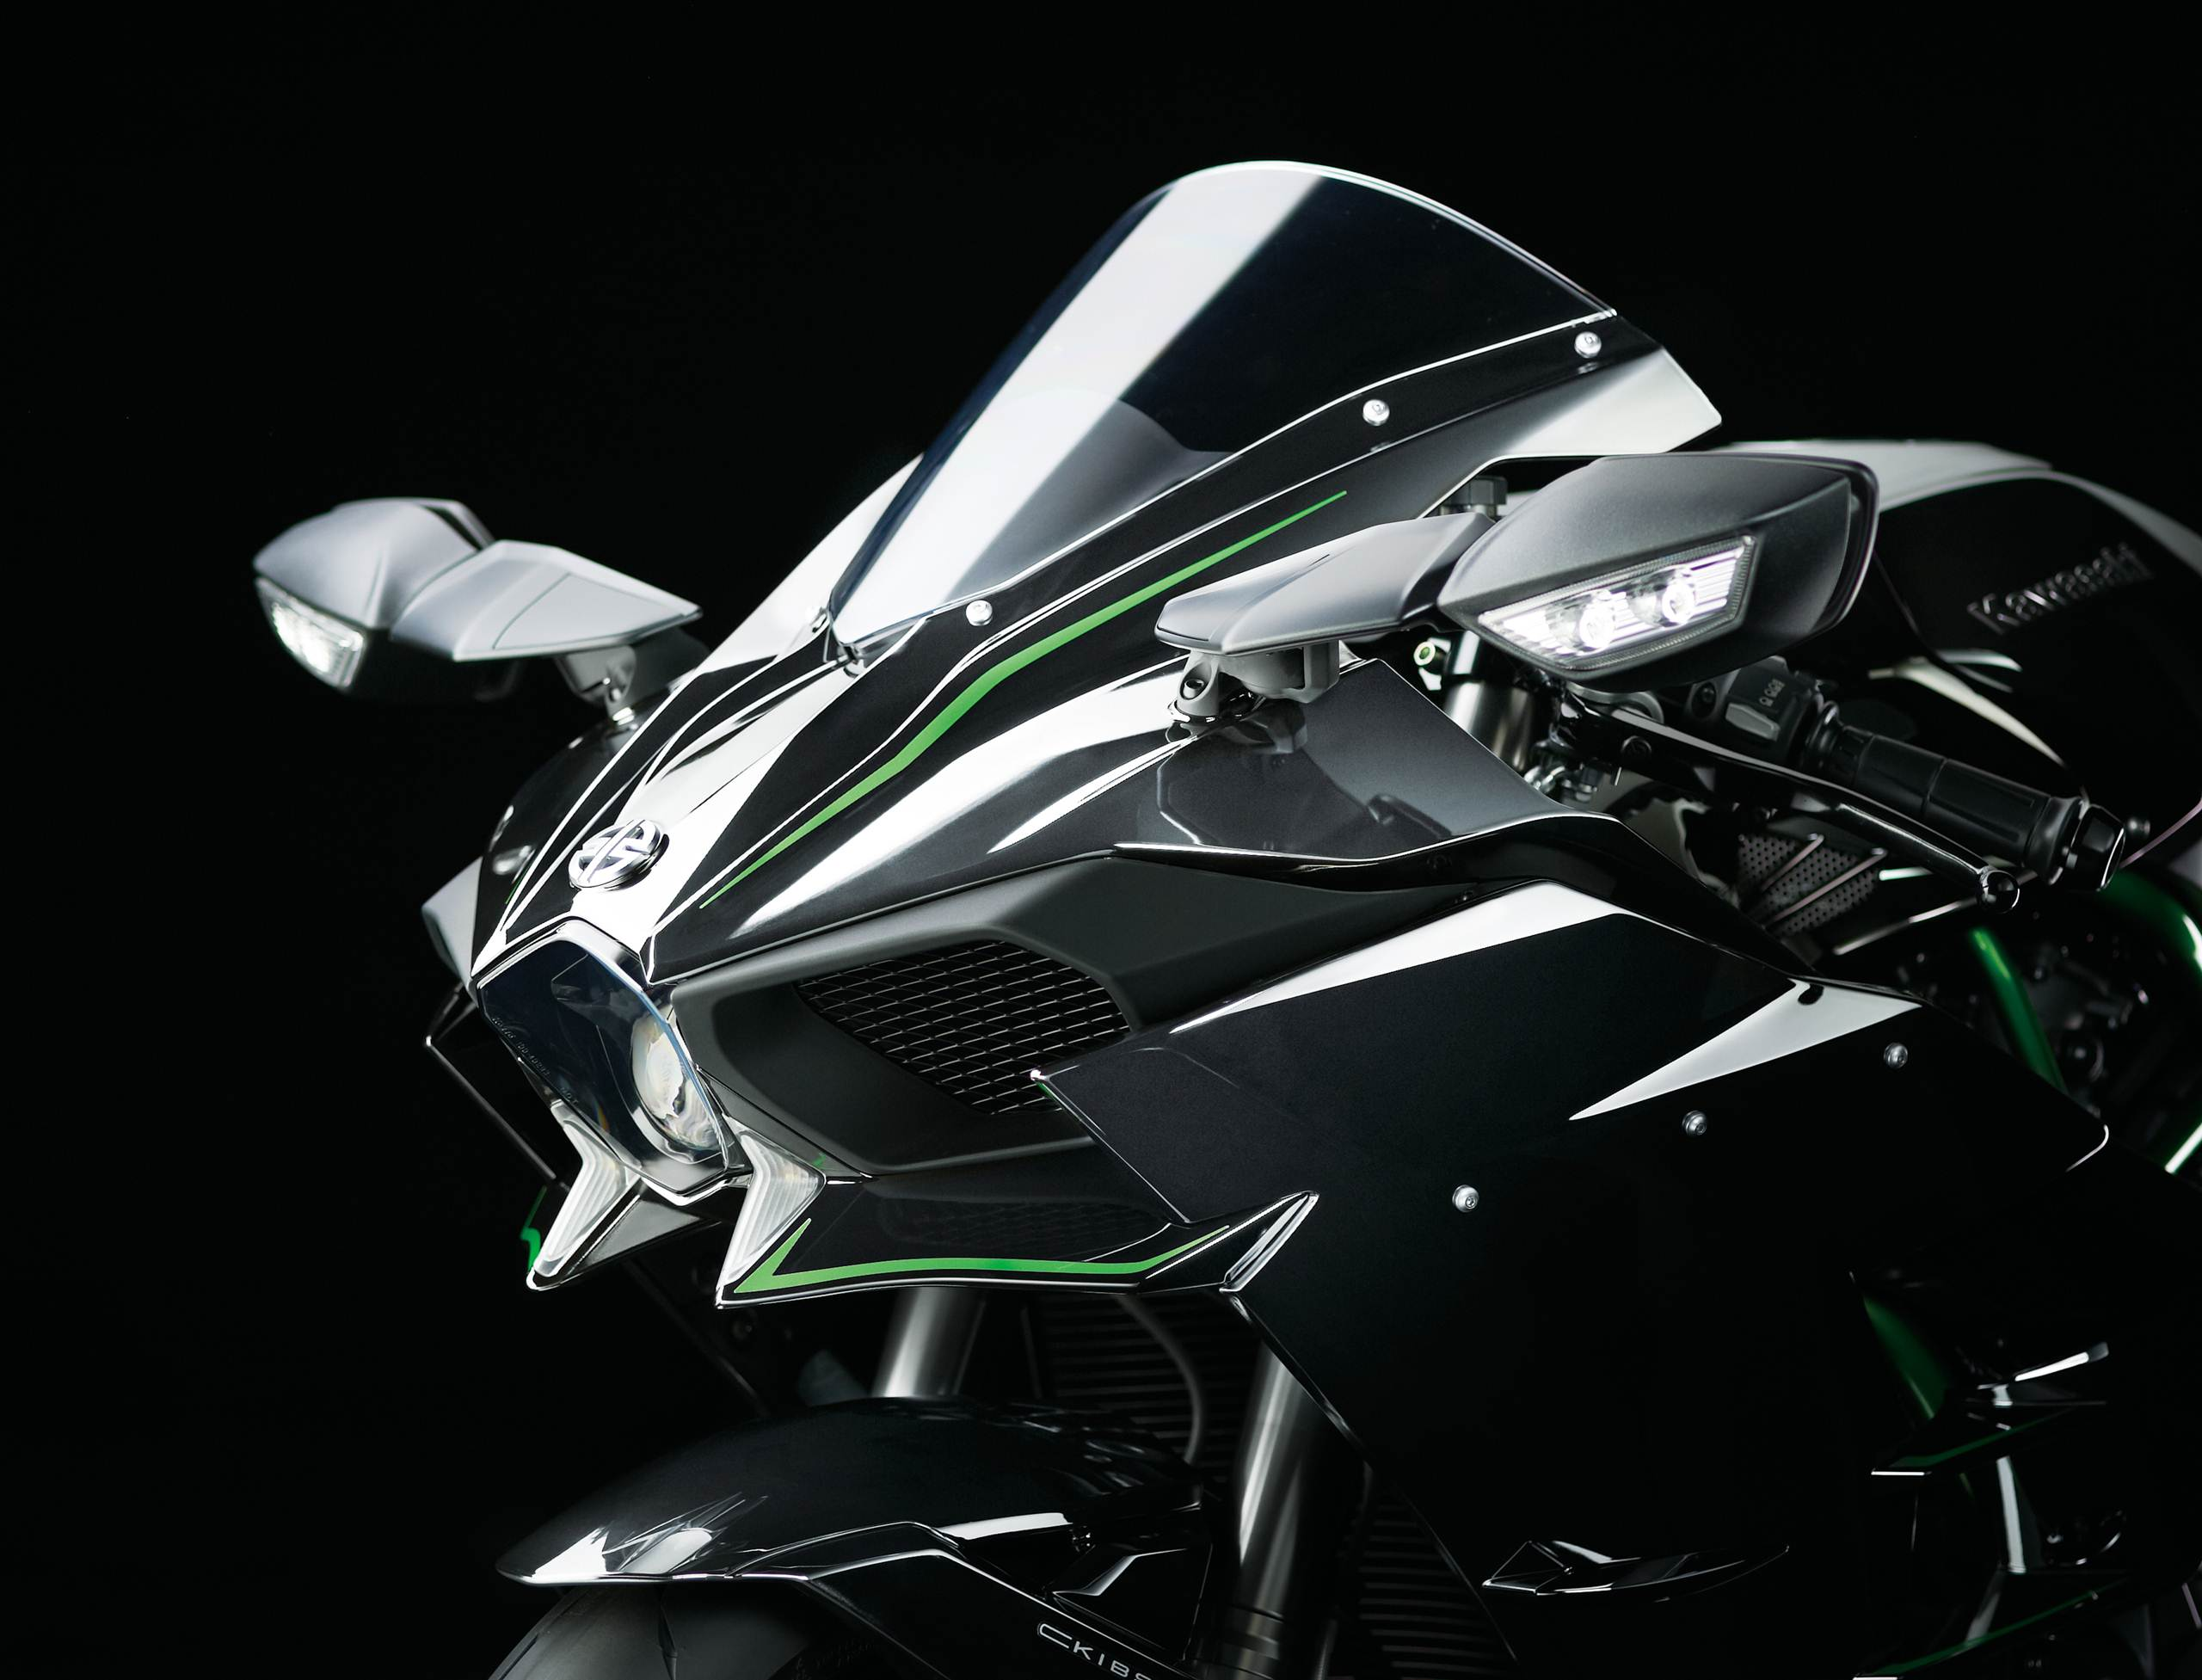 2015 kawasaki ninja h2 front section